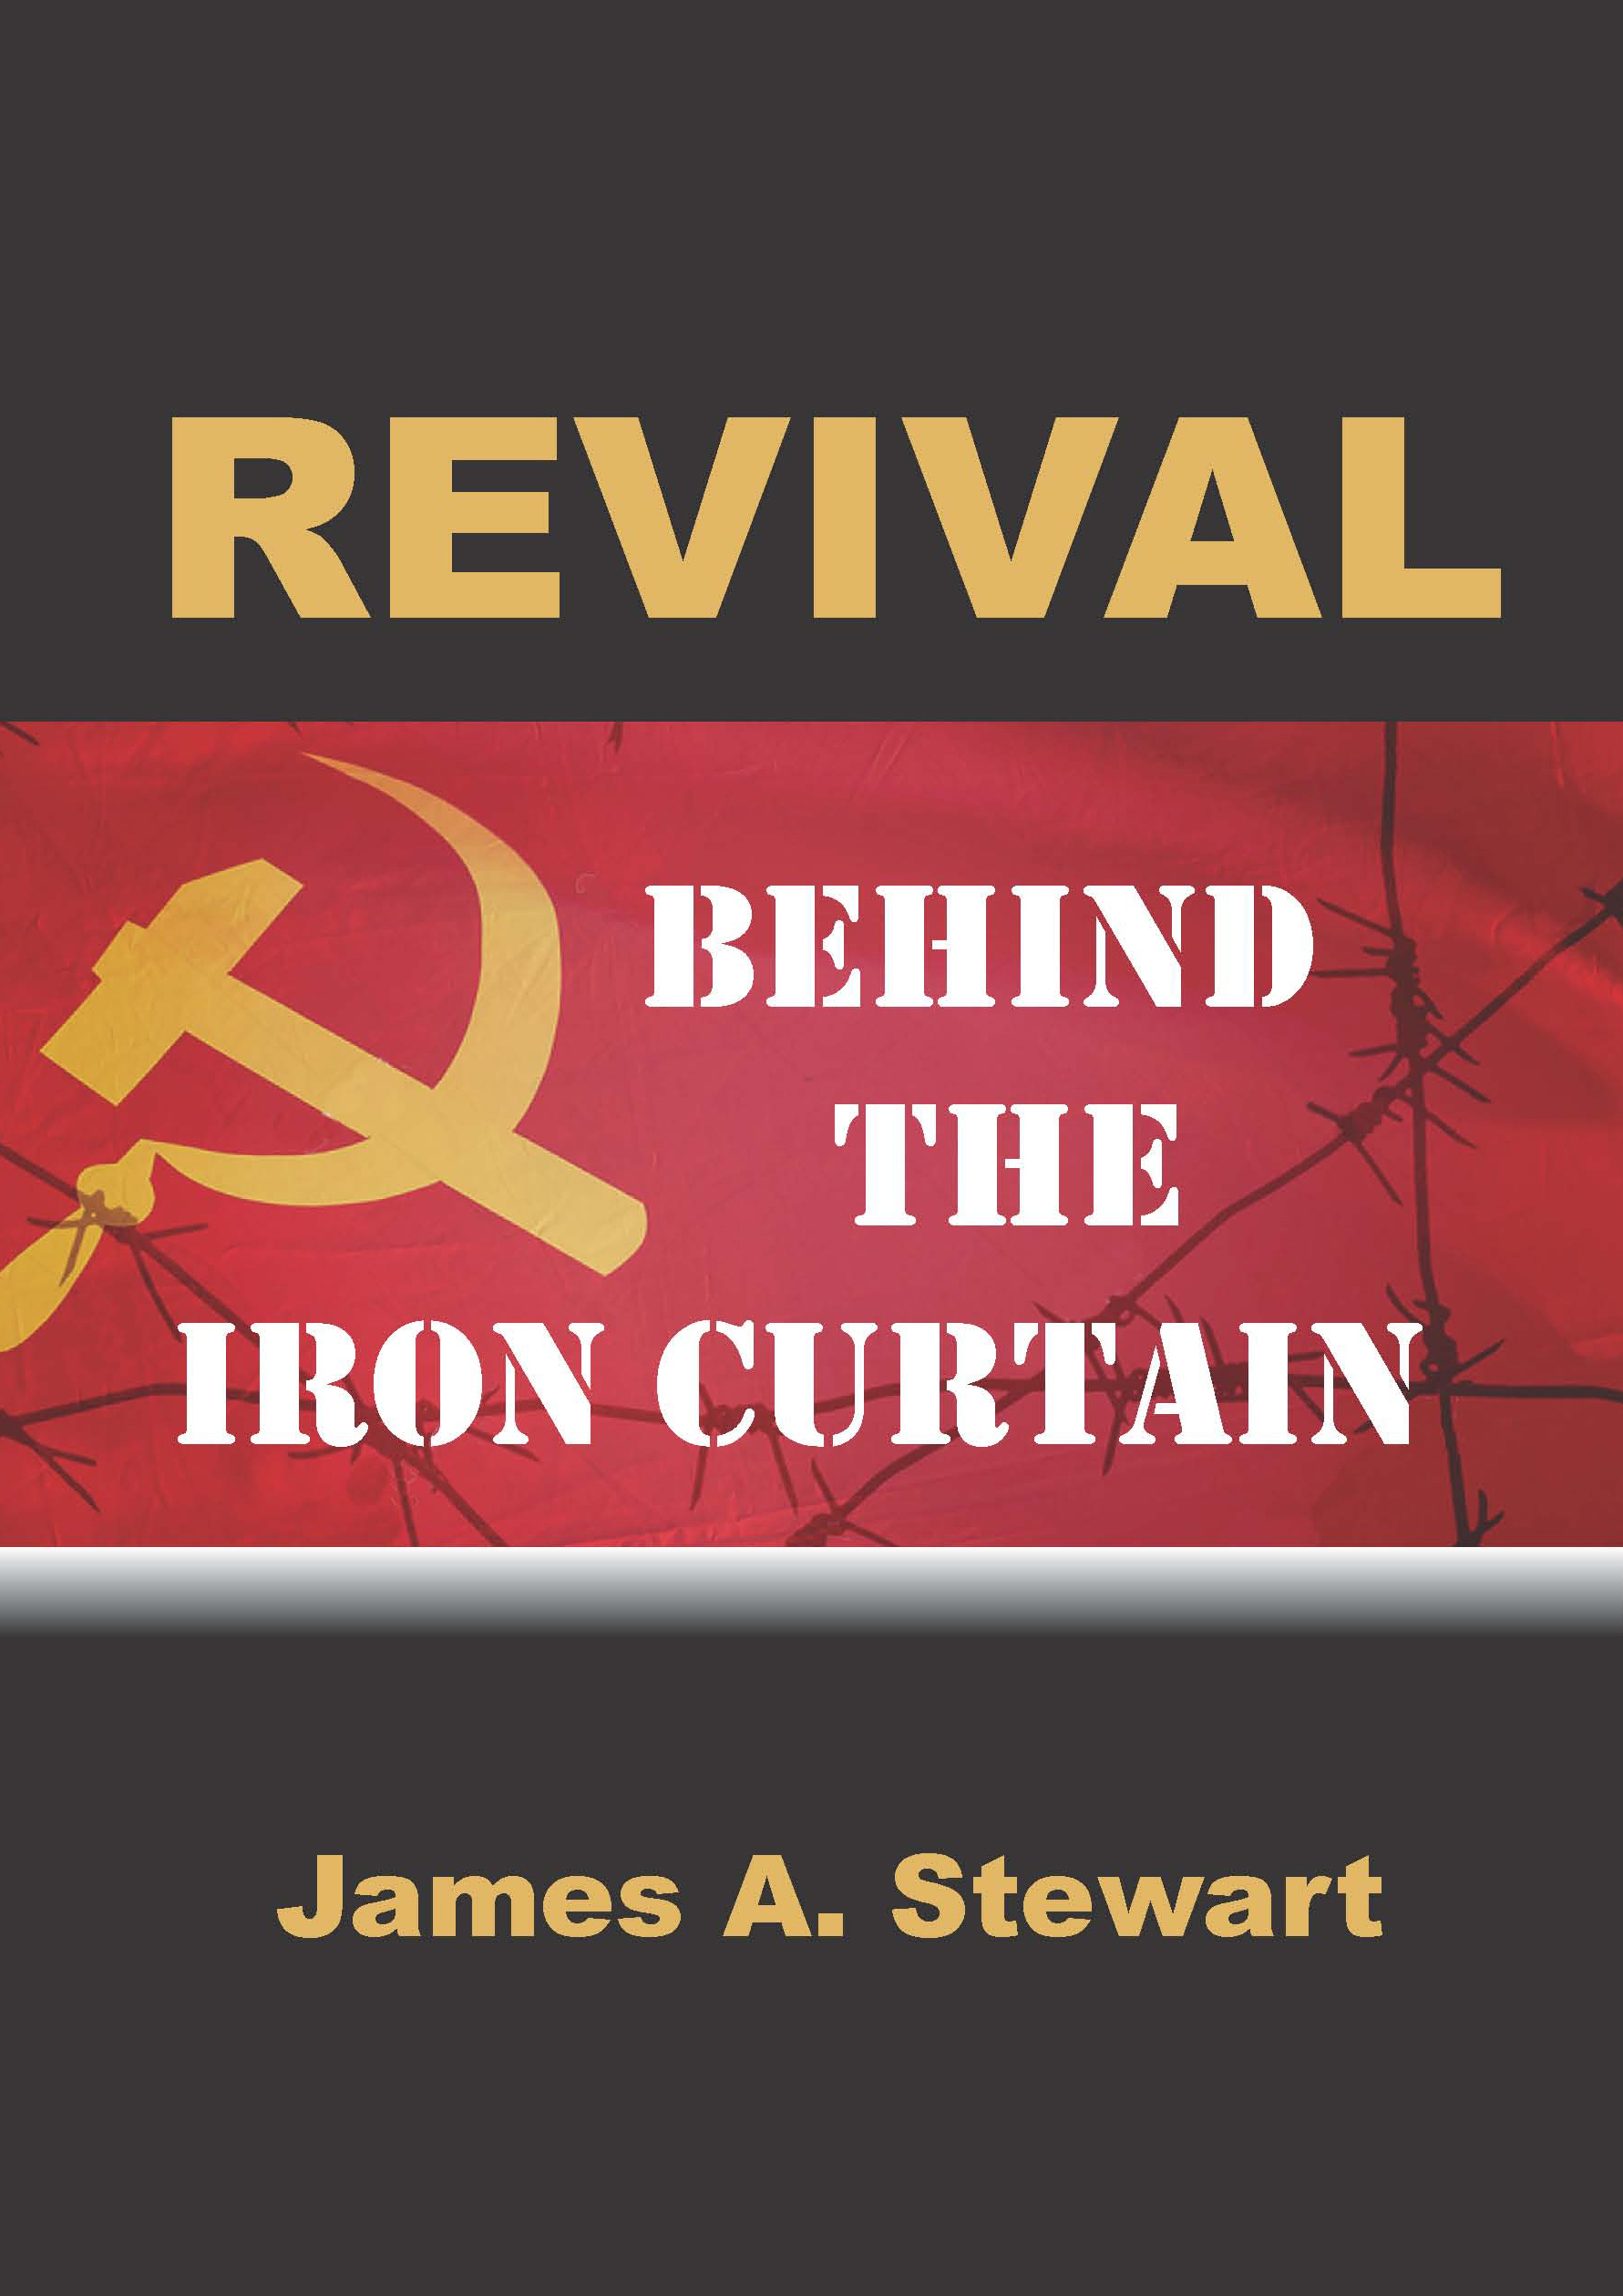 Revival Behind the Iron Curtain